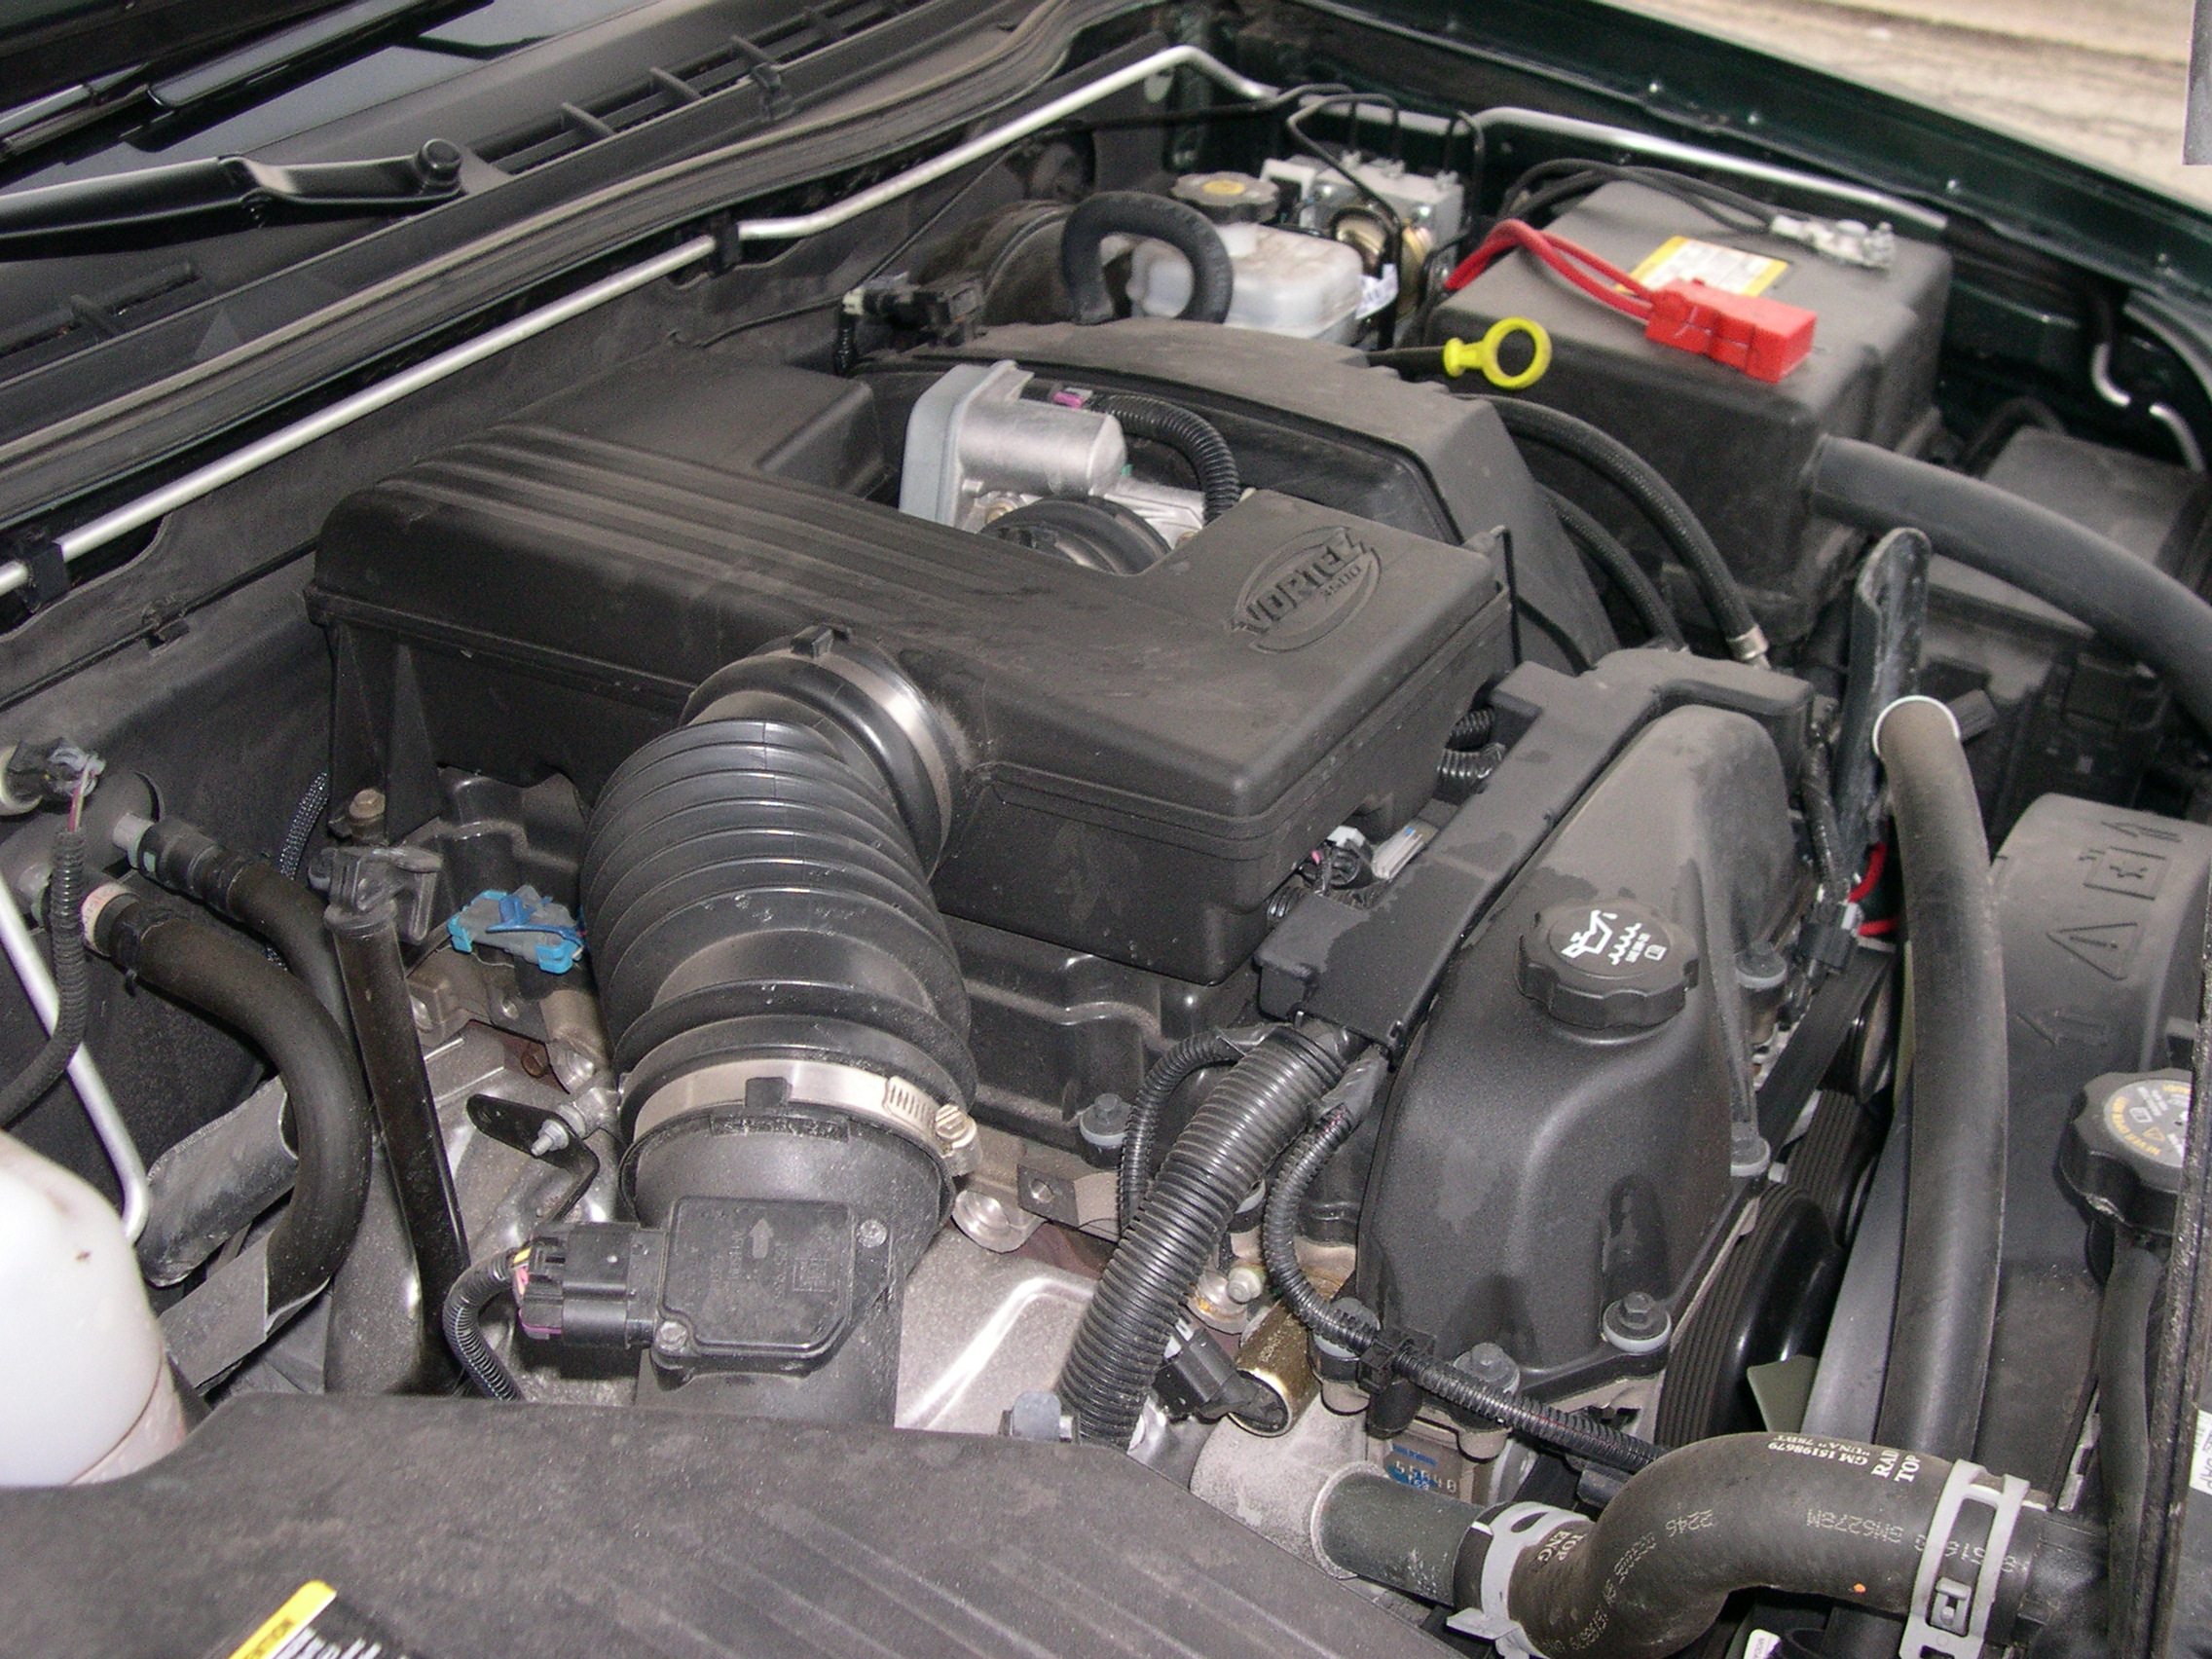 GMC_Canyon_Vortec_3500_engine file gmc canyon vortec 3500 engine jpg wikimedia commons